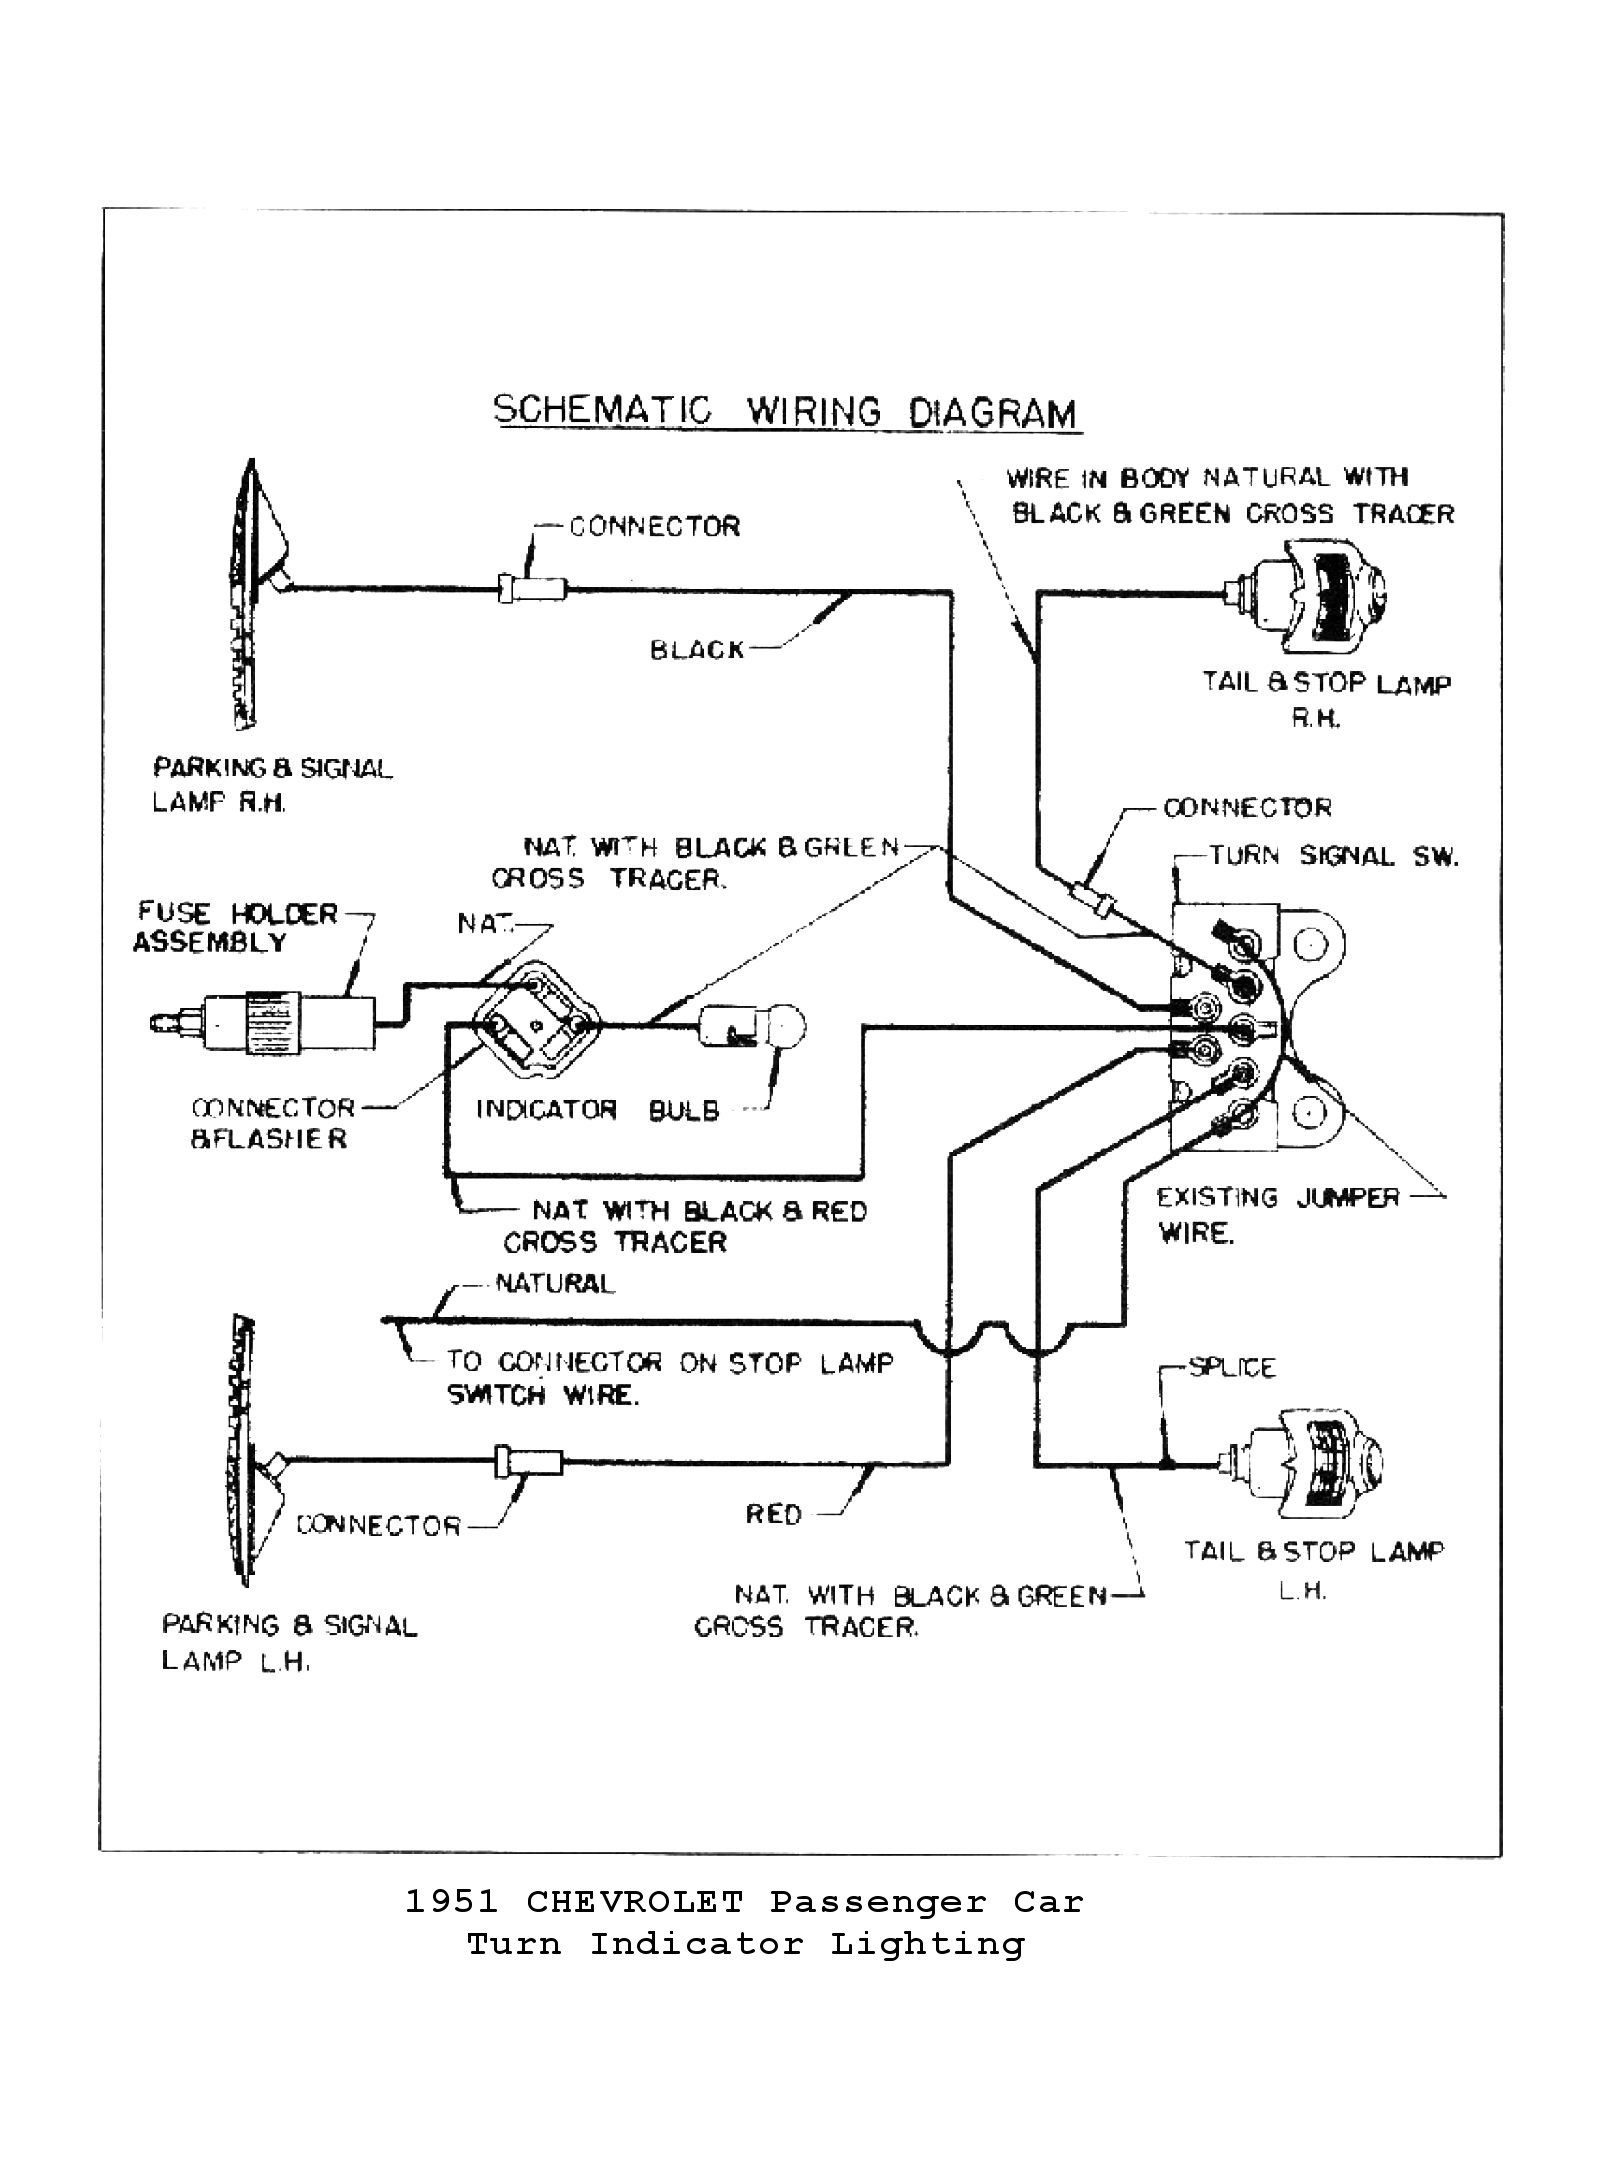 1987 town car wiring diagram wiring library YJ Ignition Diagram